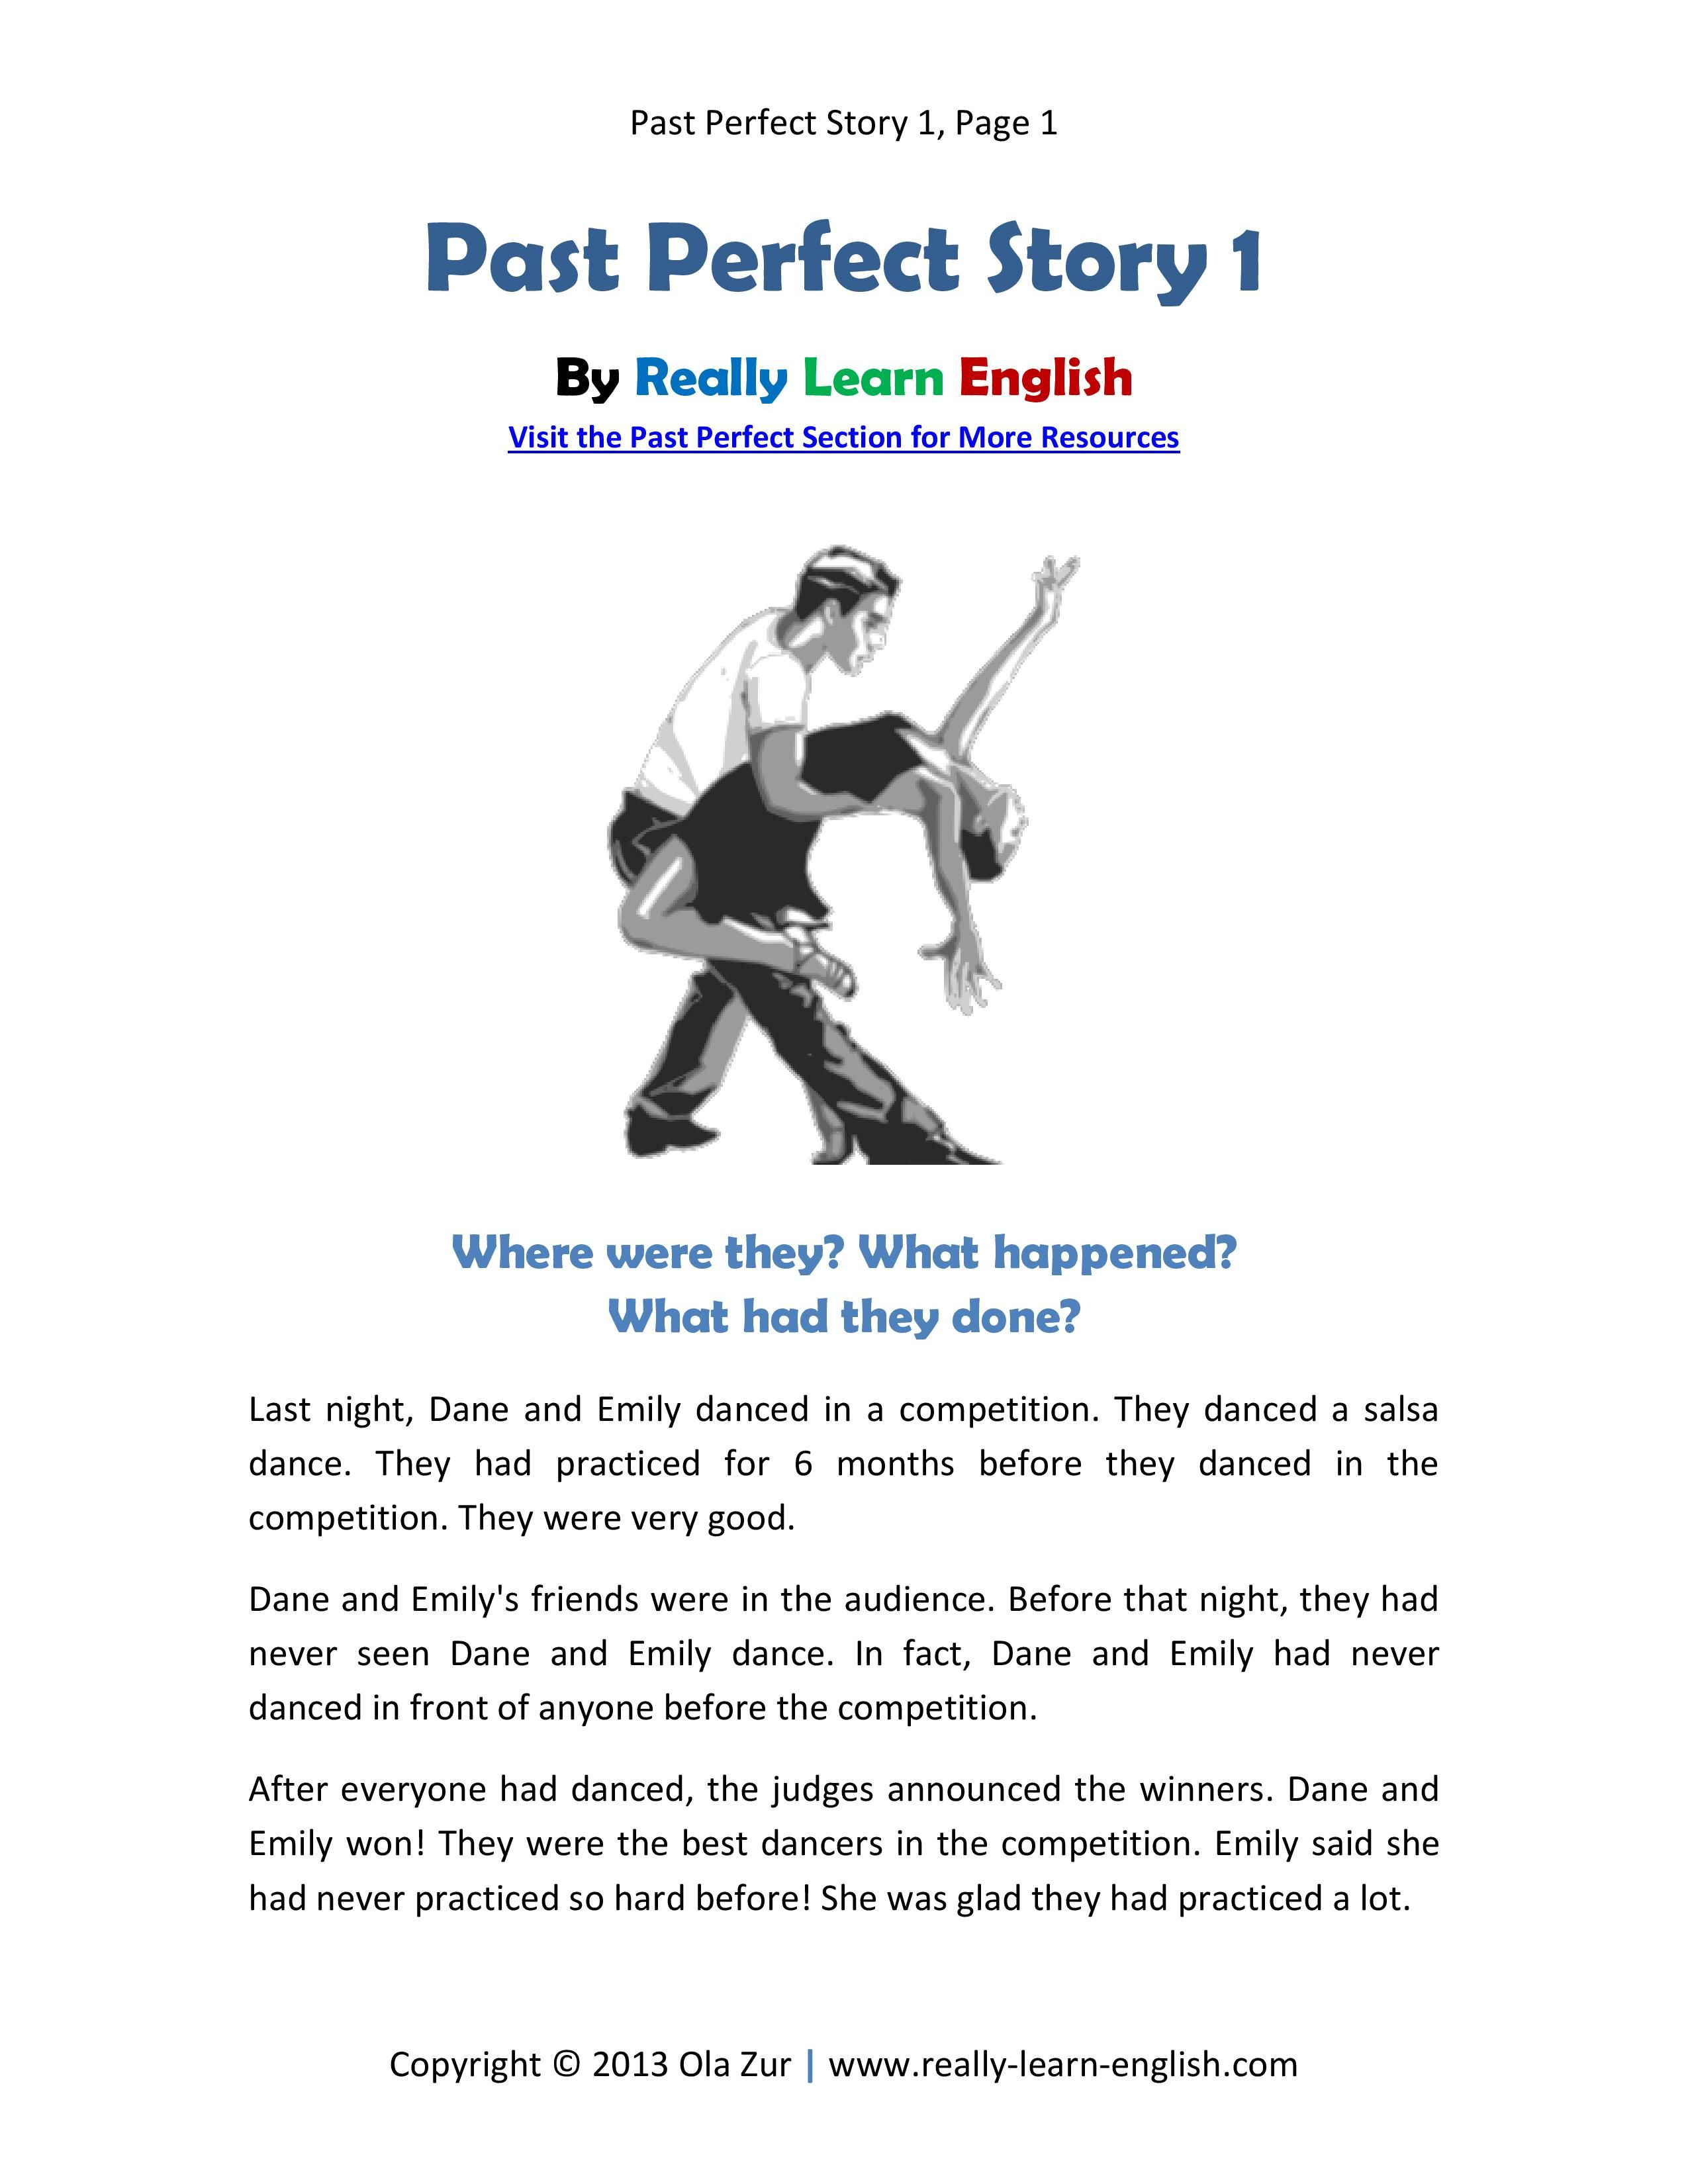 Free Printable Story And Exercises For The English Past